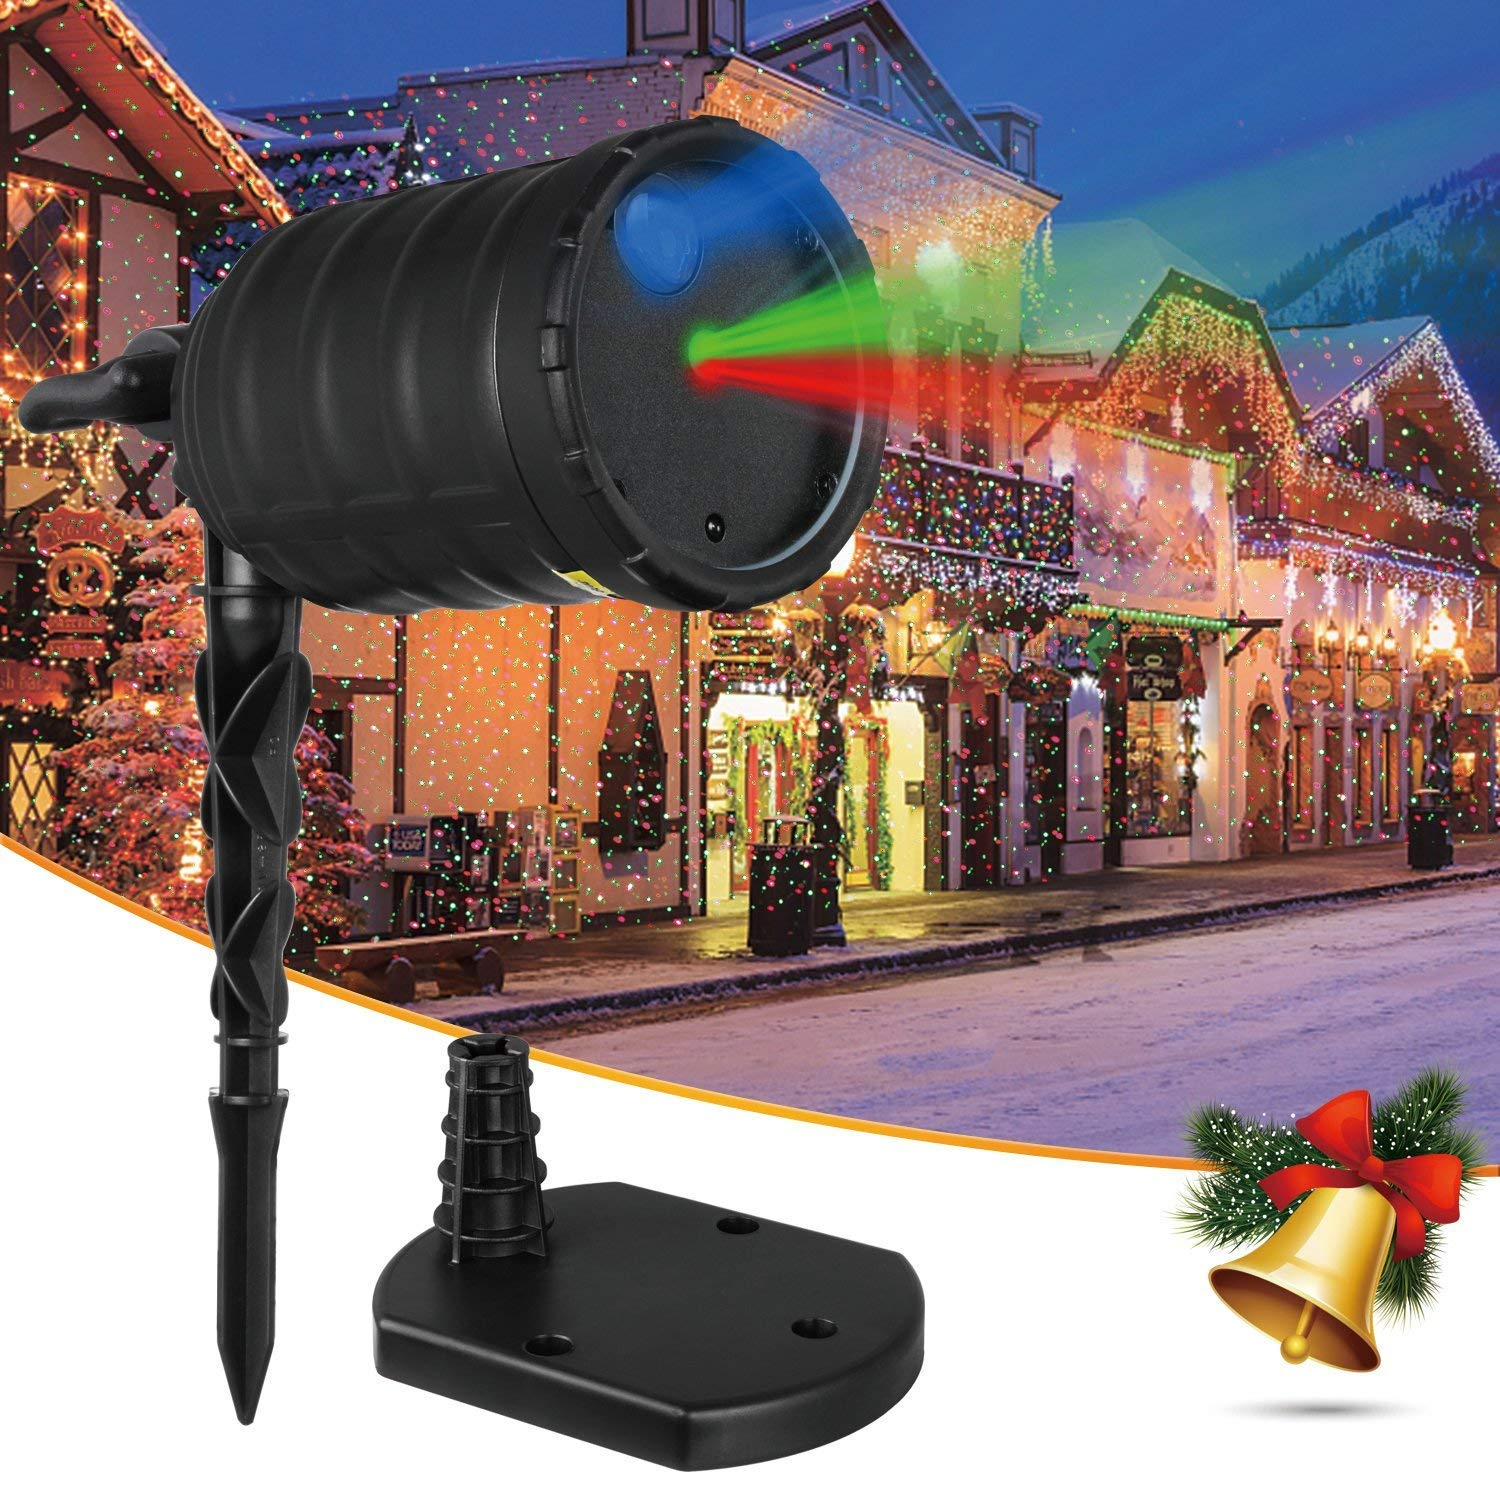 IMAXPLUS Christmas Outdoor Laser Light Projector with RGB Moving Stars Laser Show for Christmas, Holiday, Party, Landscape, and Garden Decoration AUTO-VOX